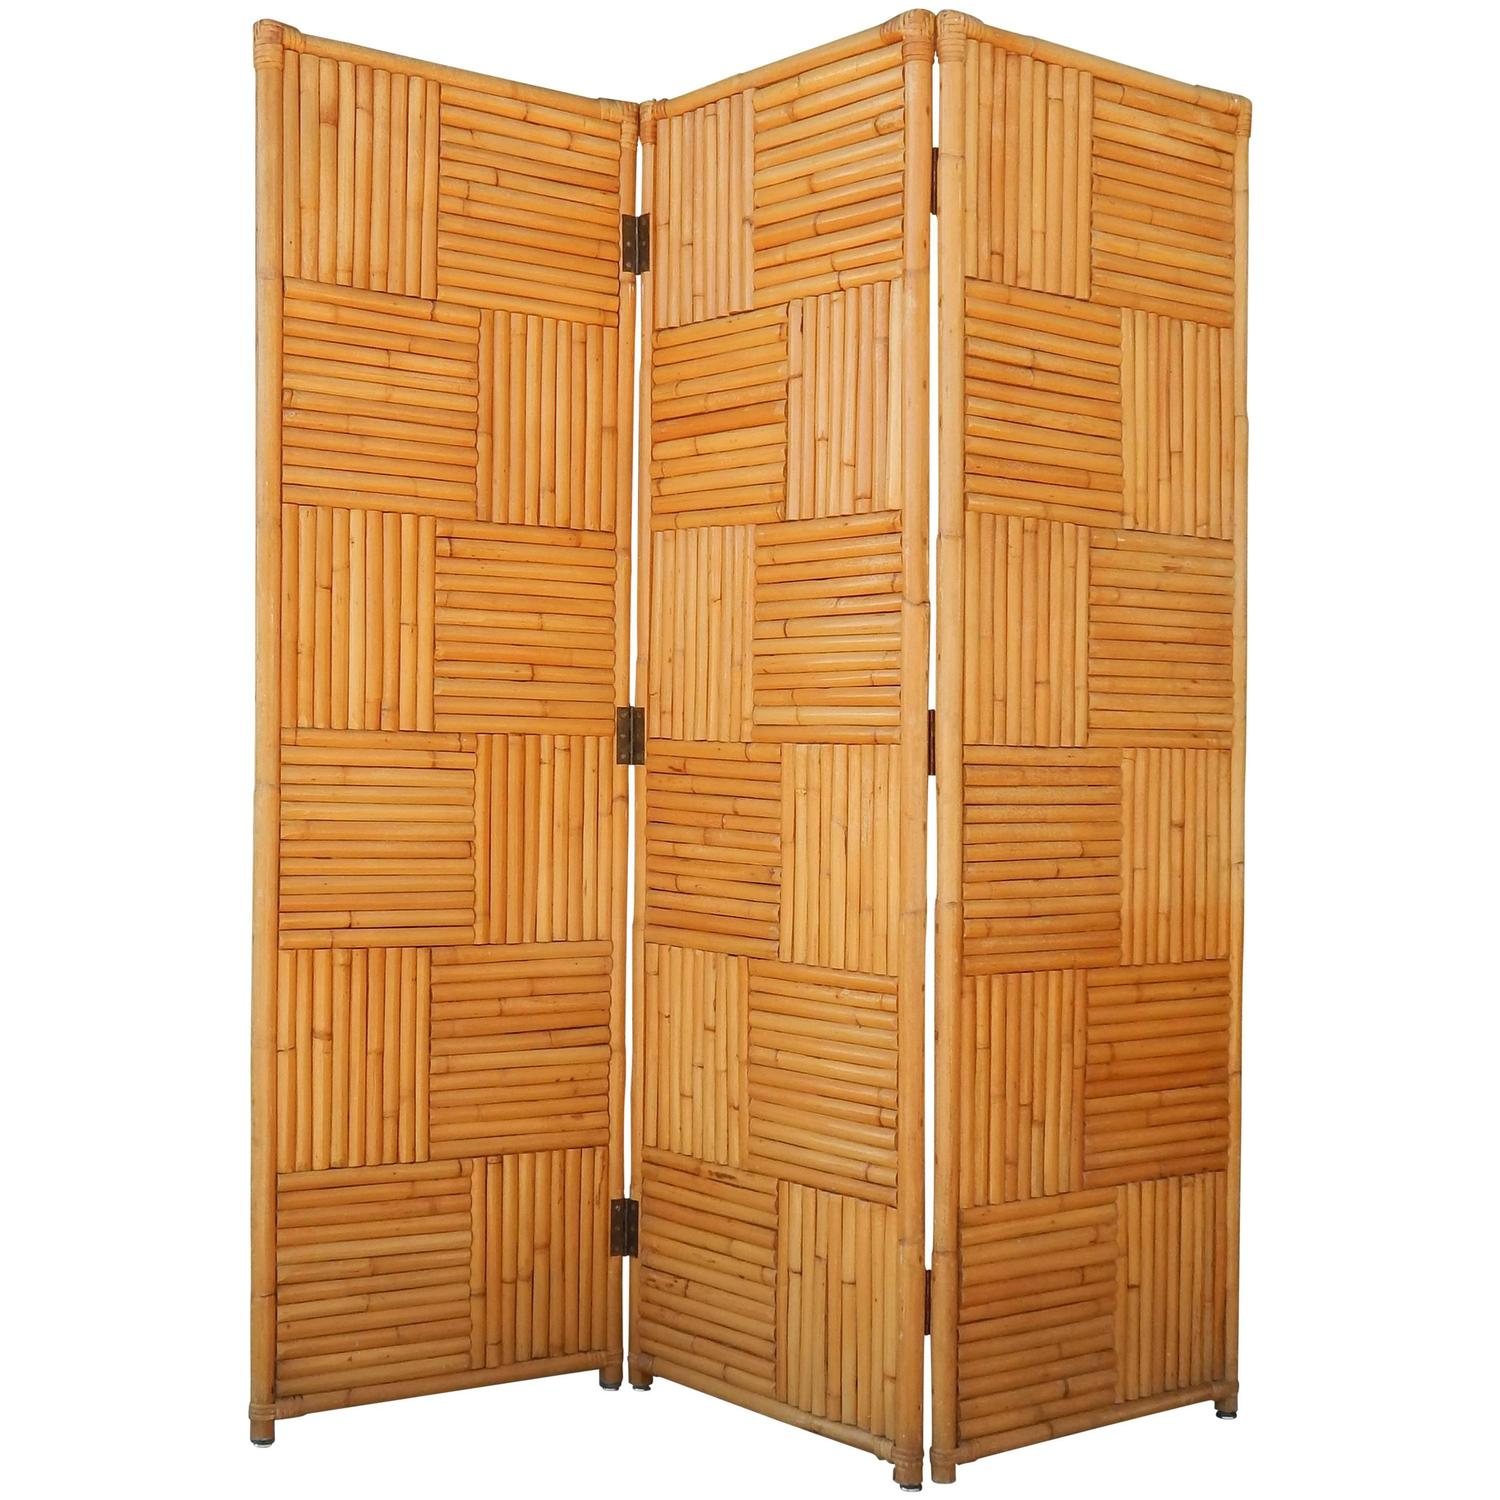 Wood And Leather Room Divider For Sale At 1stdibs # Muebles Ralph Lauren Espana